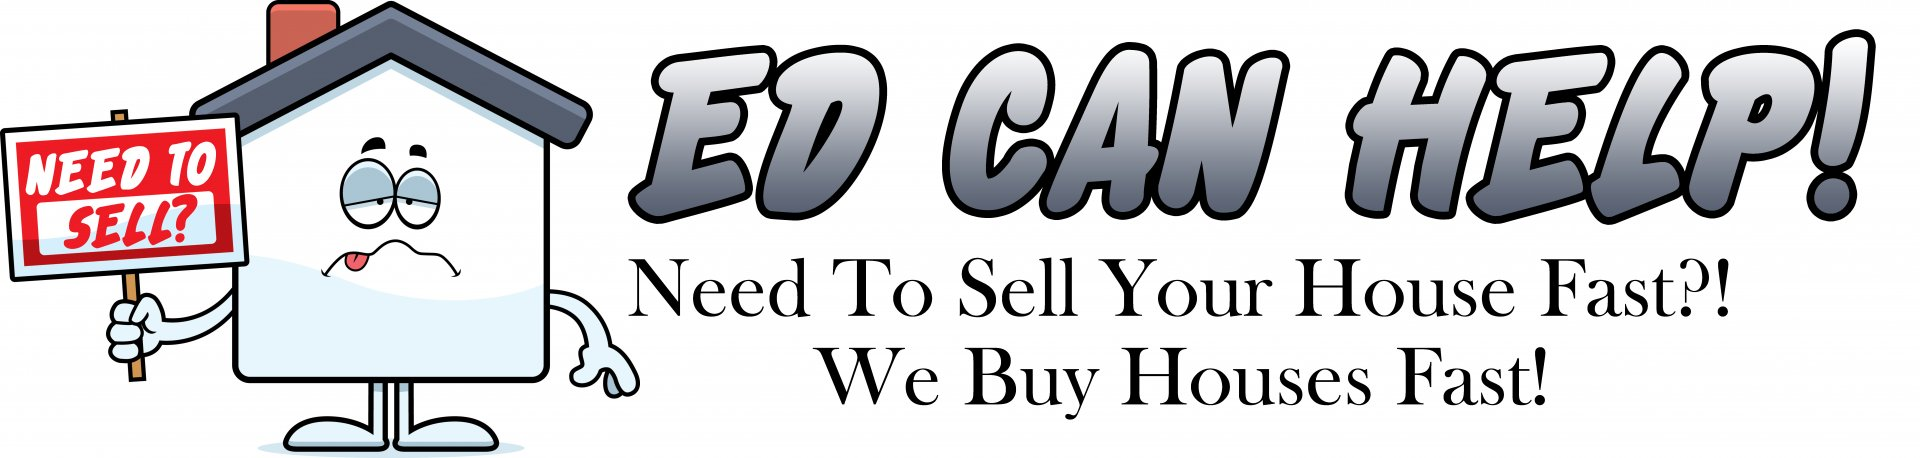 Ed Can Help Buy Your Houston Home Fast logo